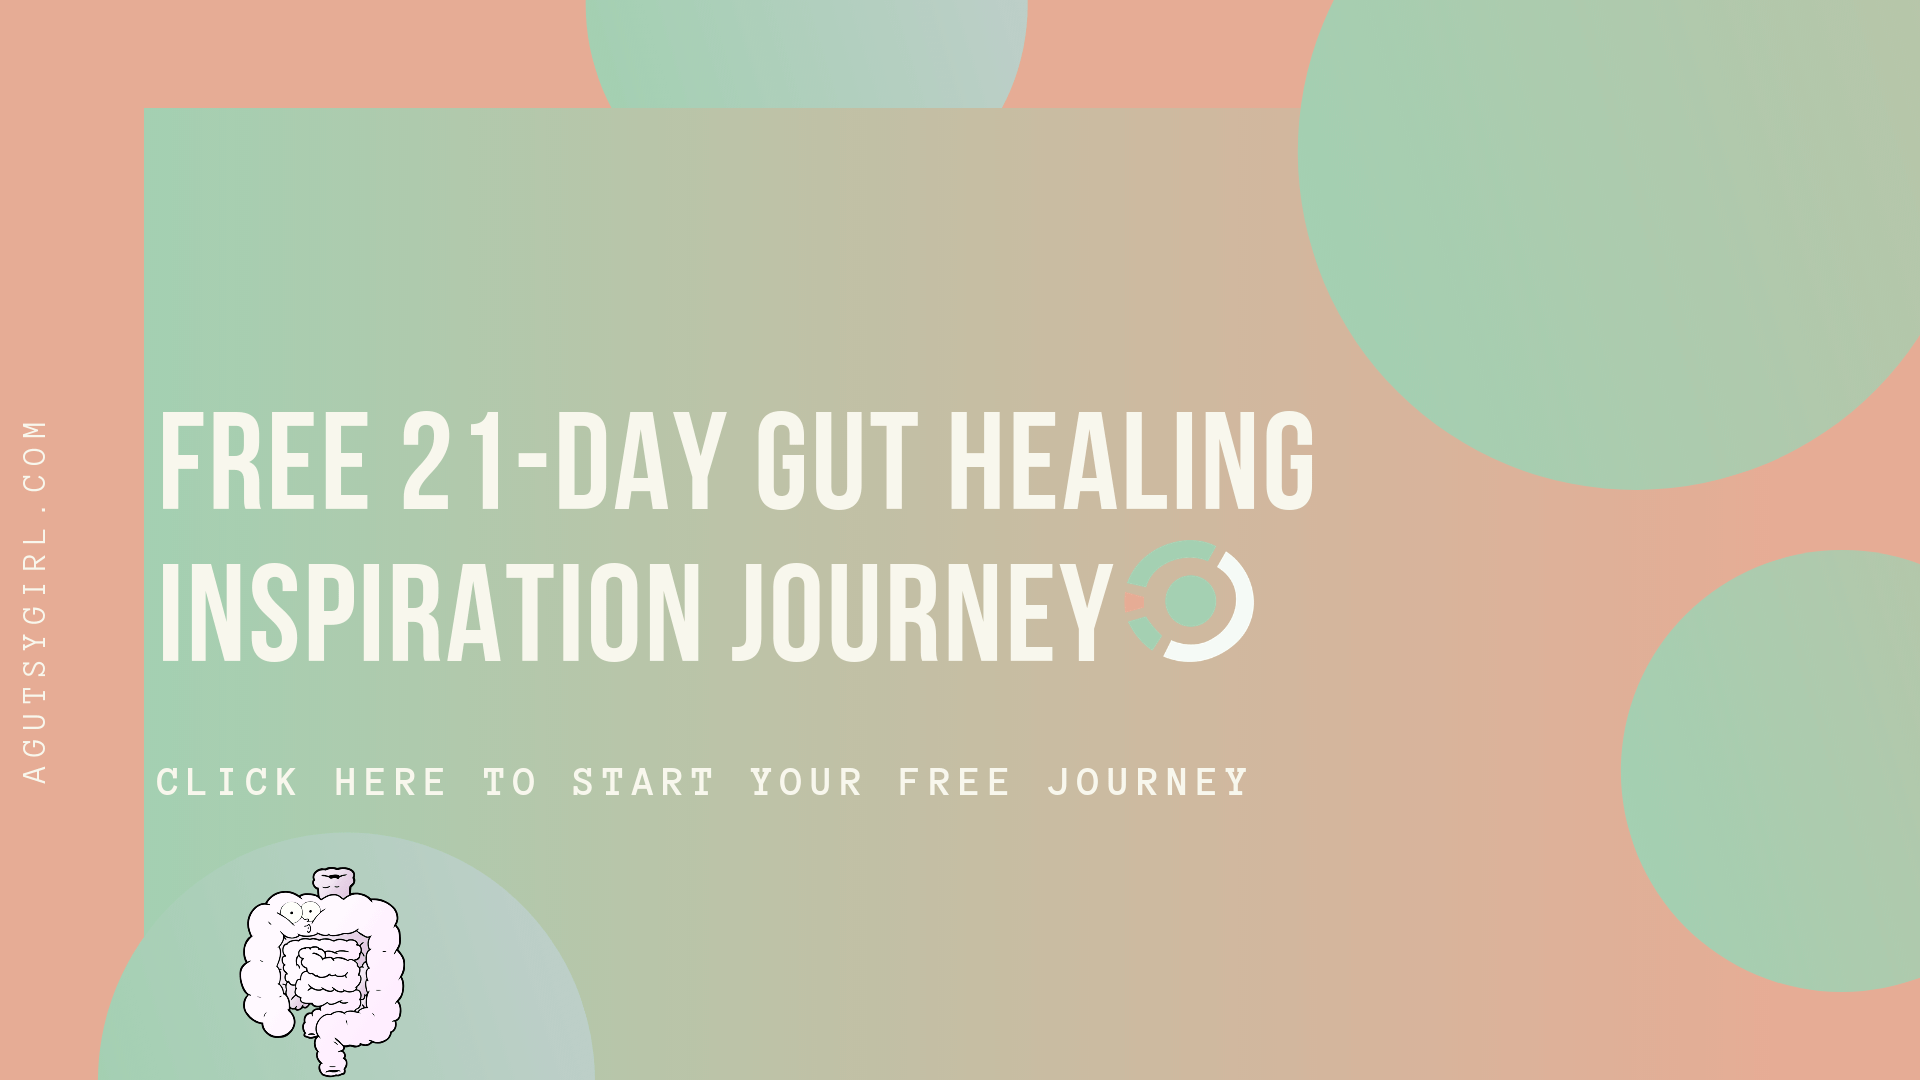 21-Day Free Gut Healing Inspiration Journey agutsygirl.com